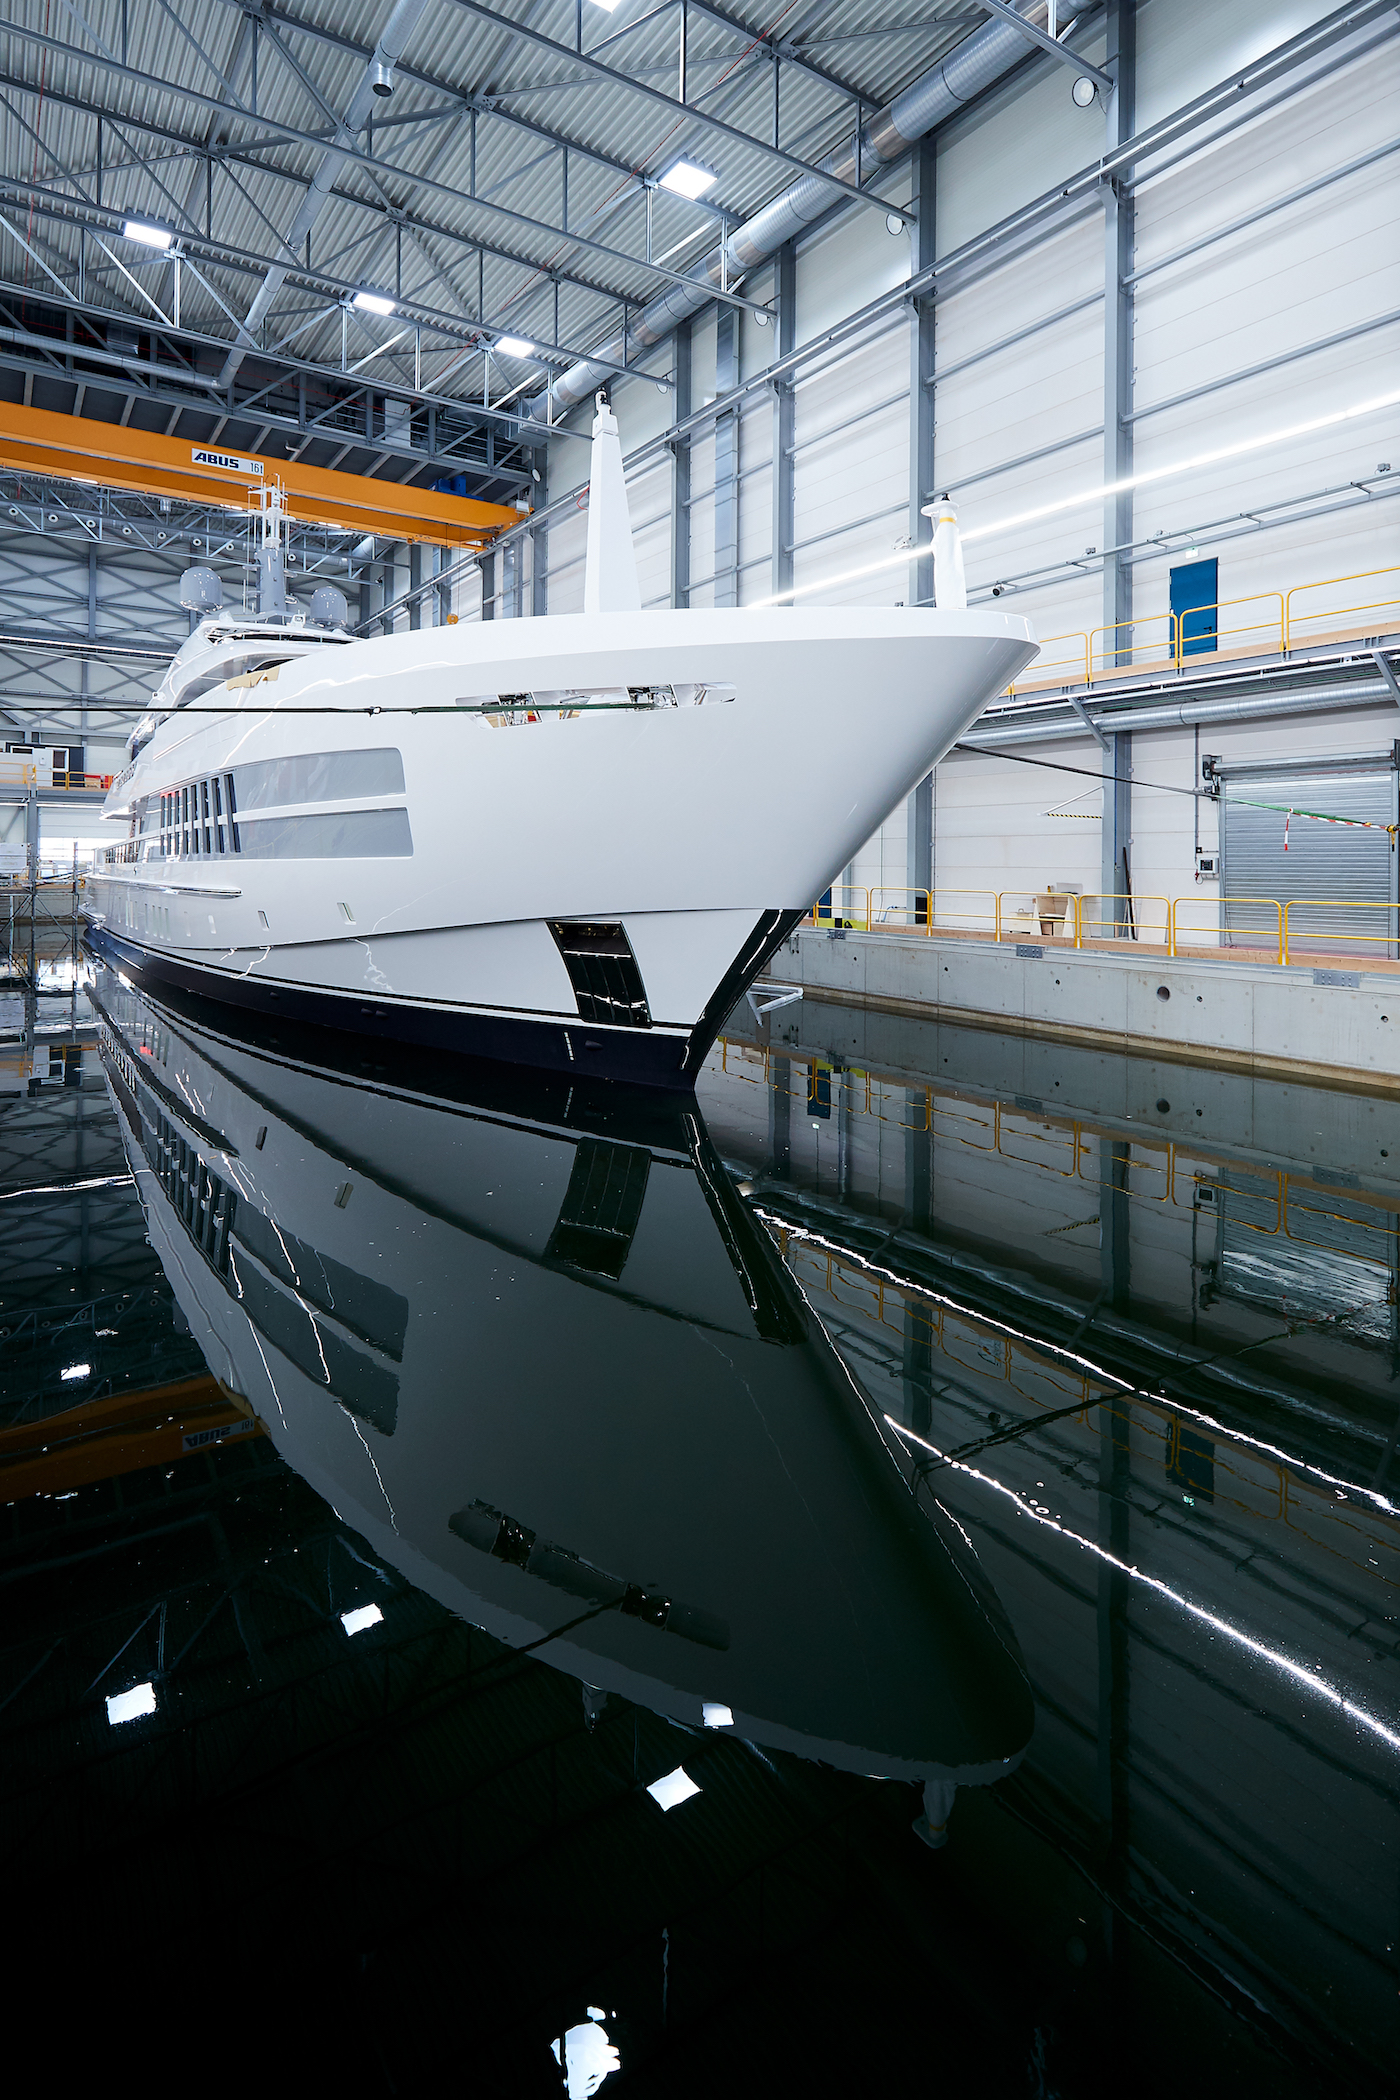 Motor Yacht Project Castor Launched